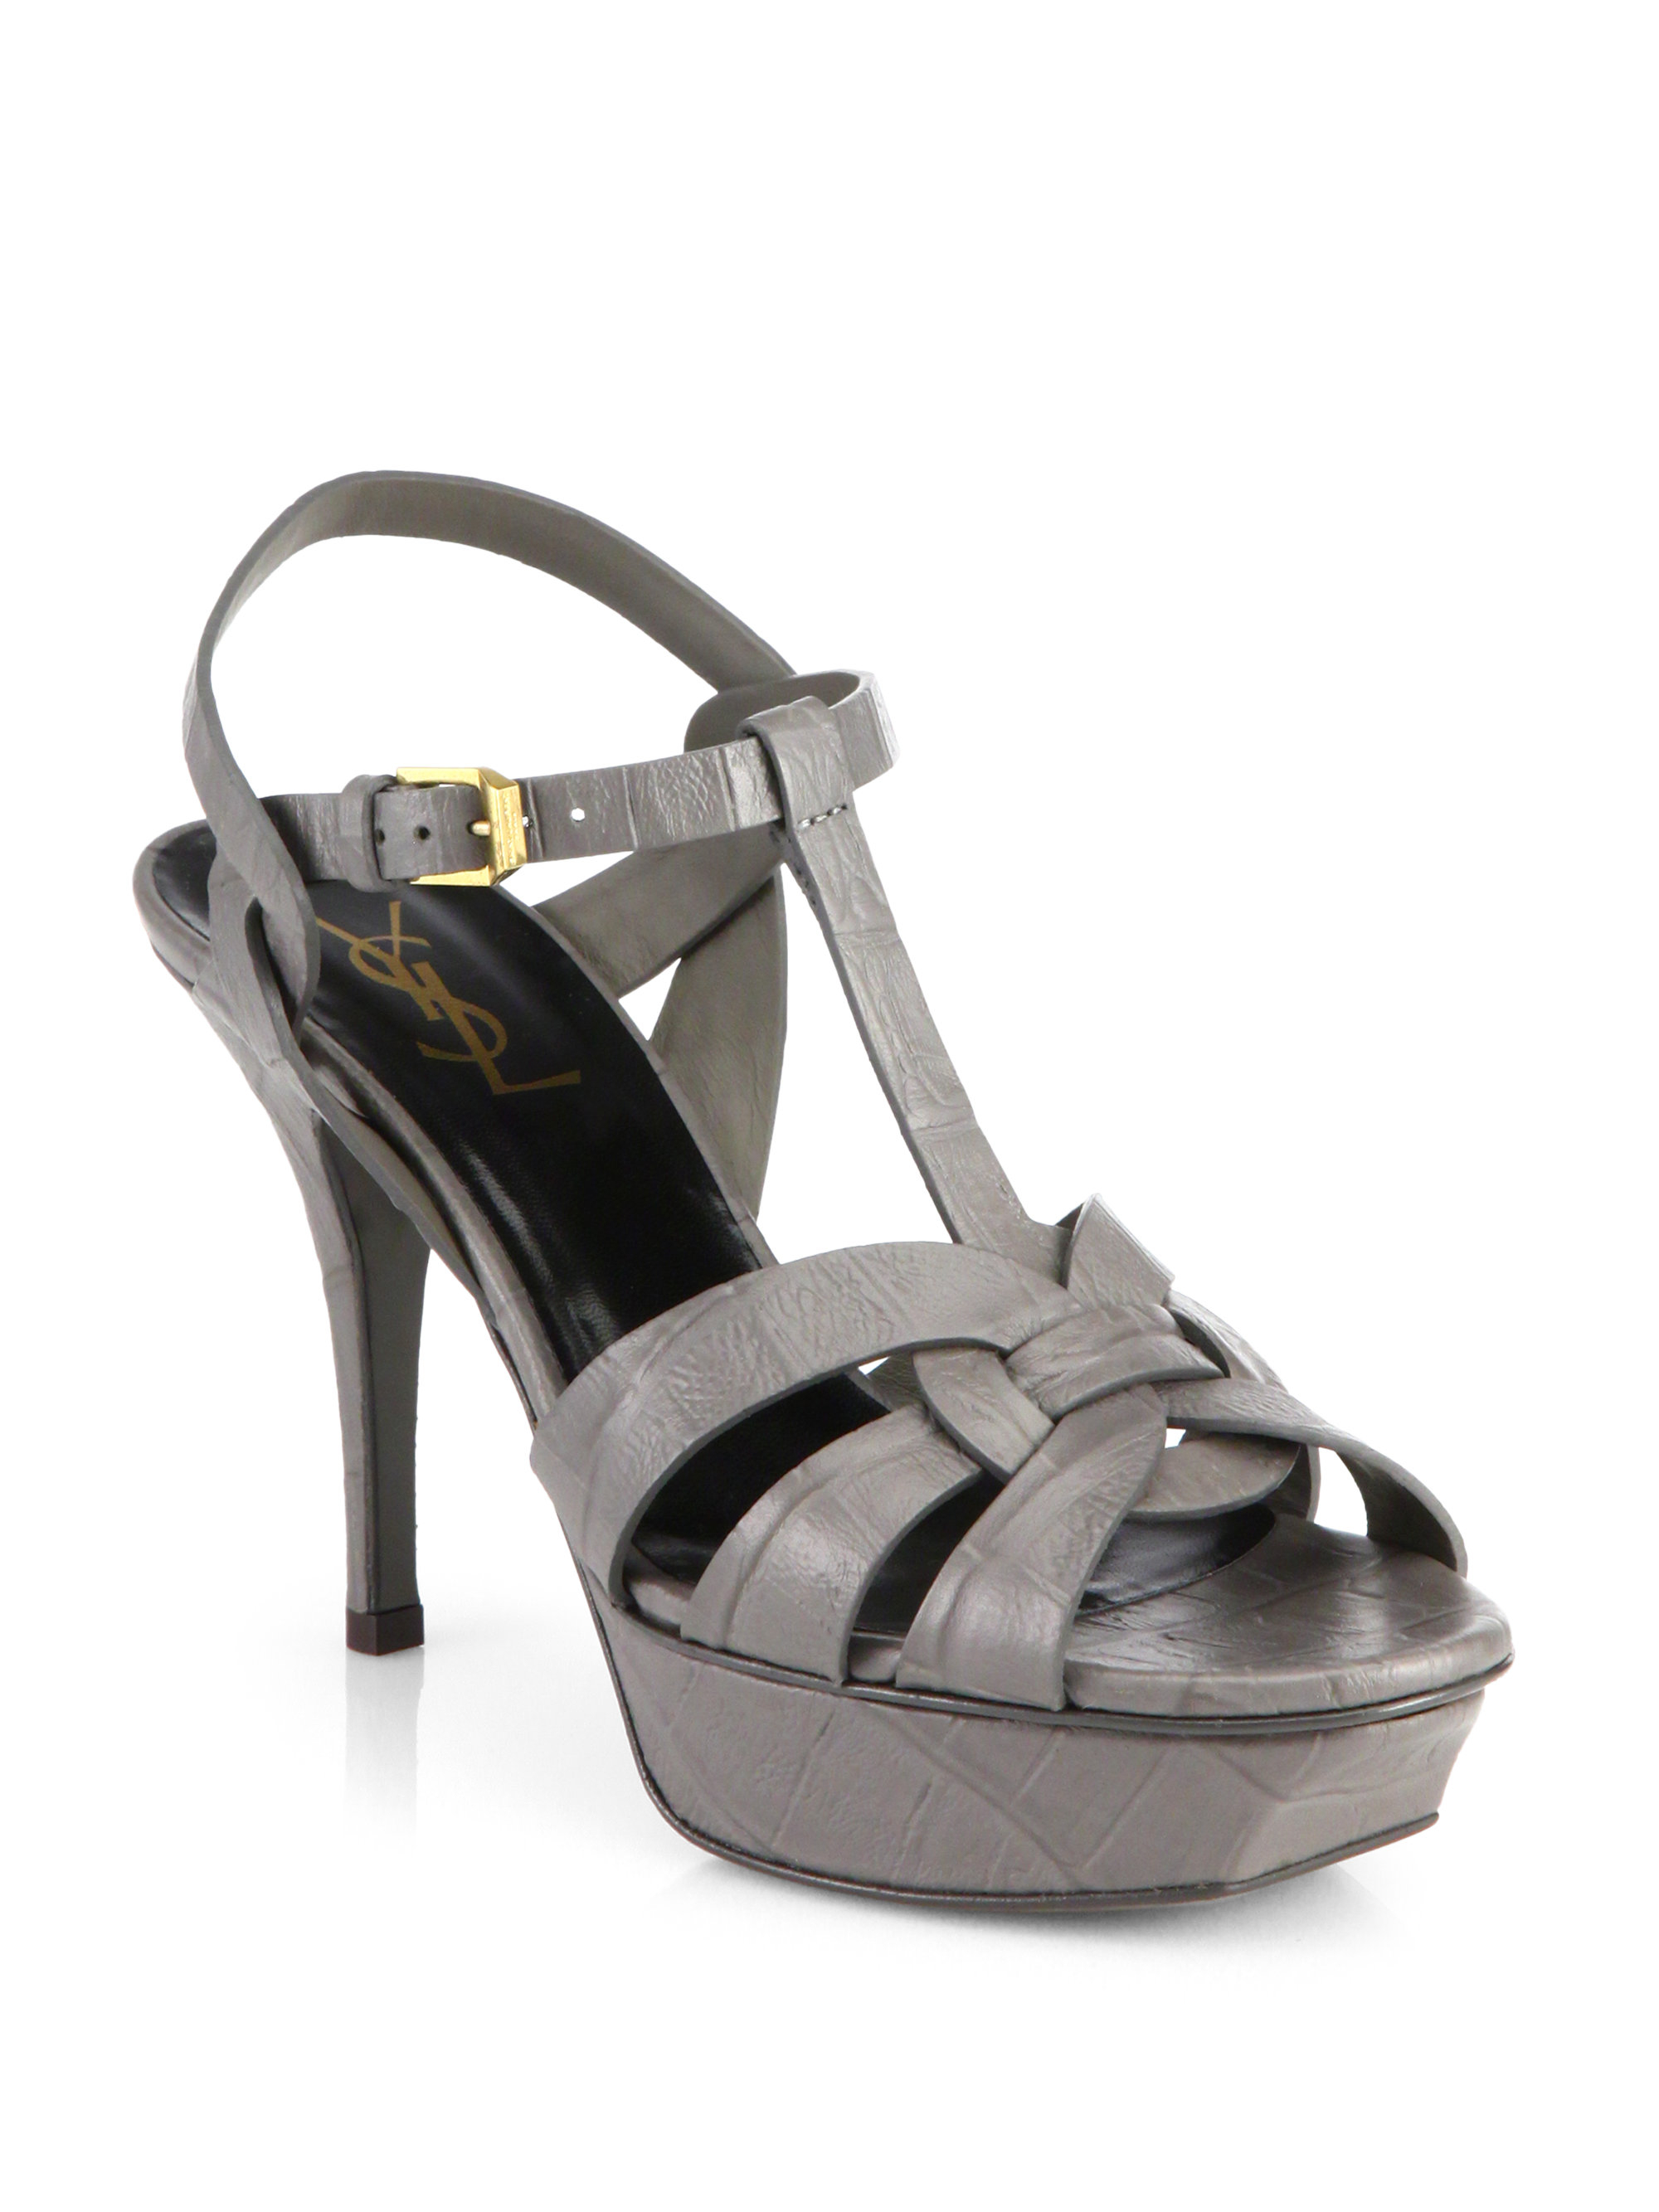 Saint Laurent Embossed Leather Platform Sandals free shipping official shipping discount authentic choice cheap online buy cheap online discount cost cuduz